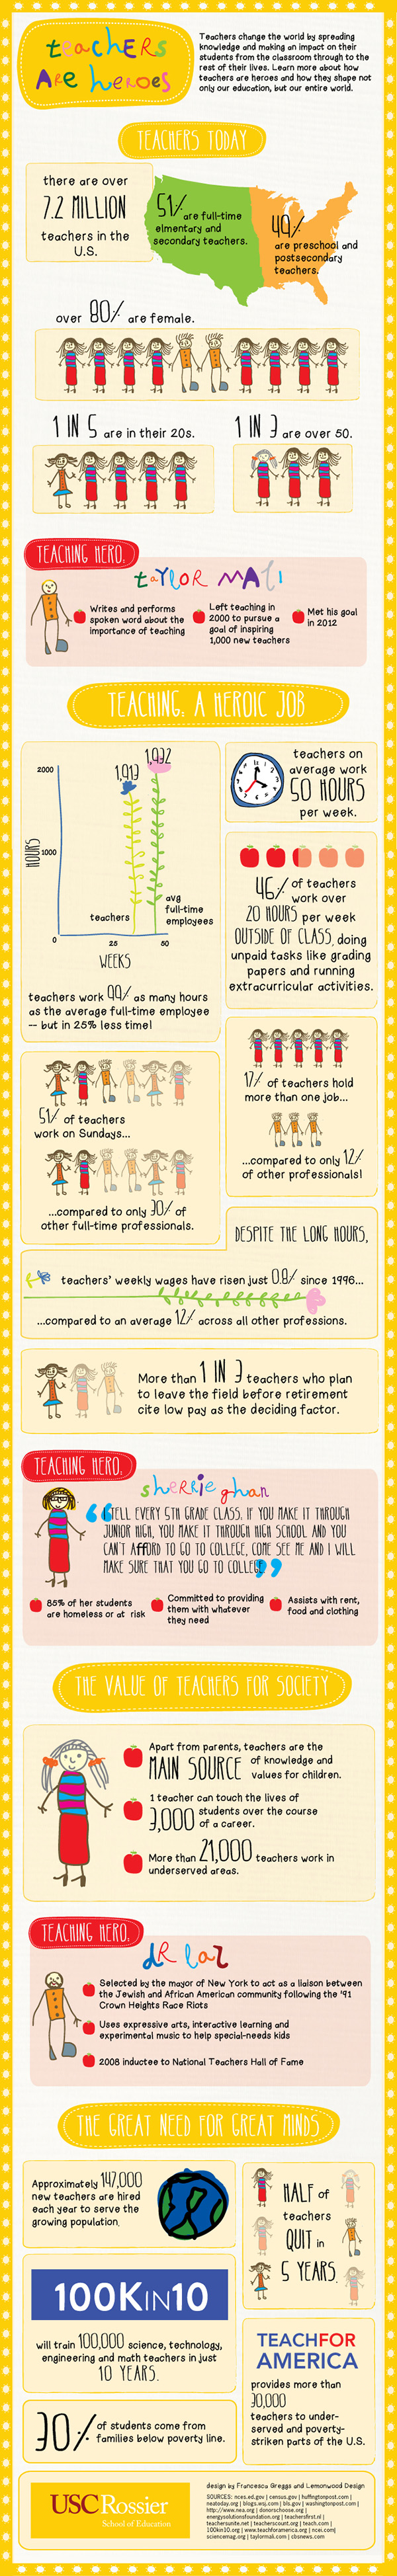 Teacher Appreciation Statistics